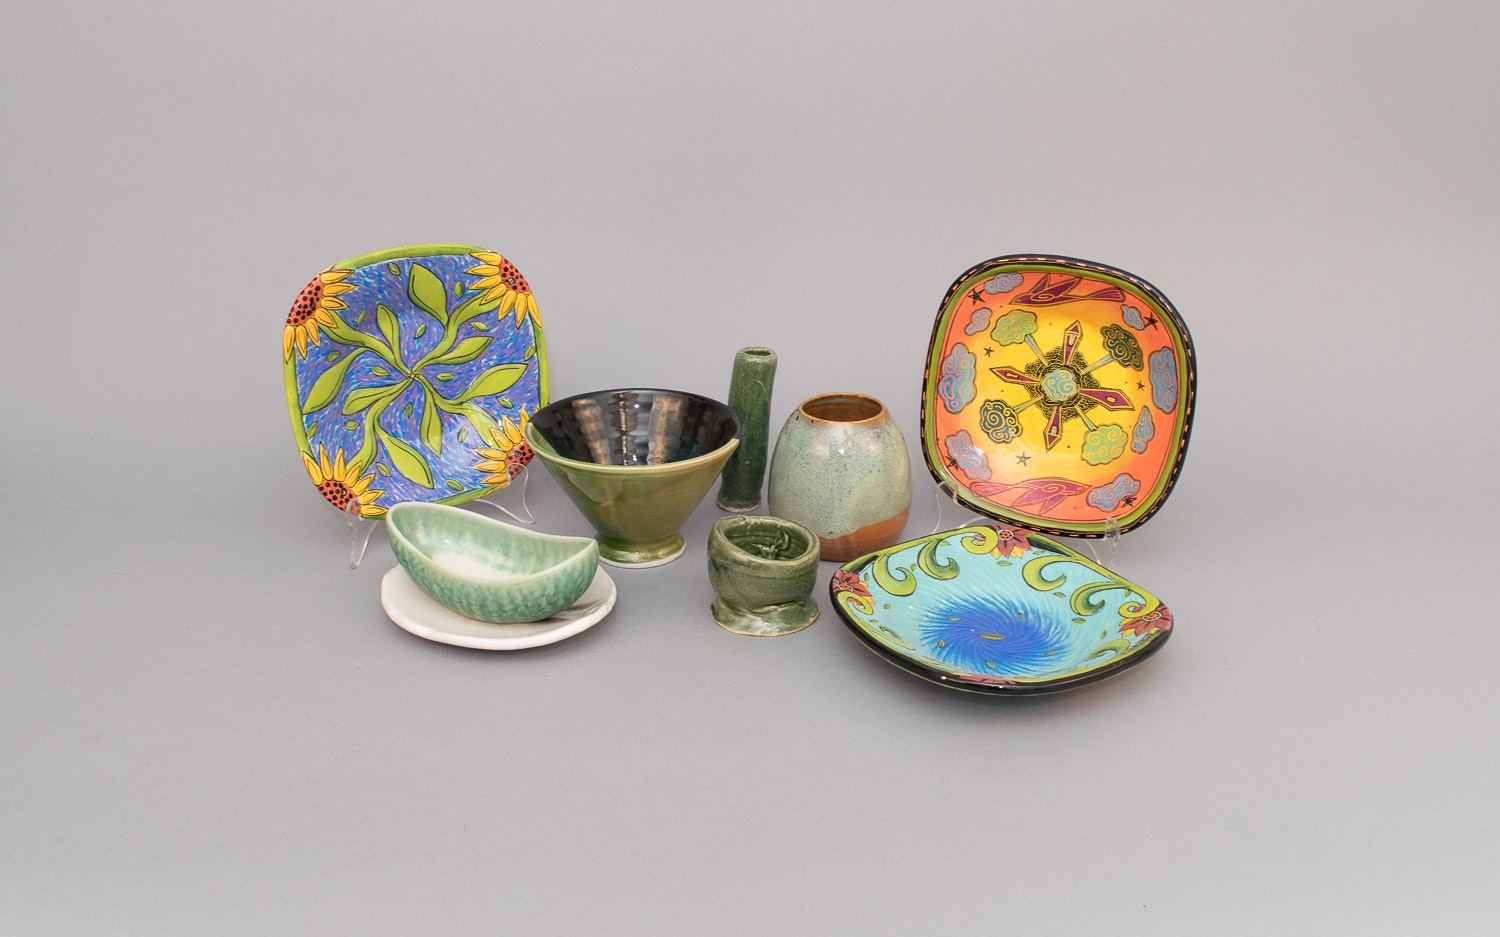 Group of Green/Blue Hand Thrown Pottery and Plates by Terri Kern ... & Group of Green/Blue Hand Thrown Pottery and Plates by Terri Kern : EBTH